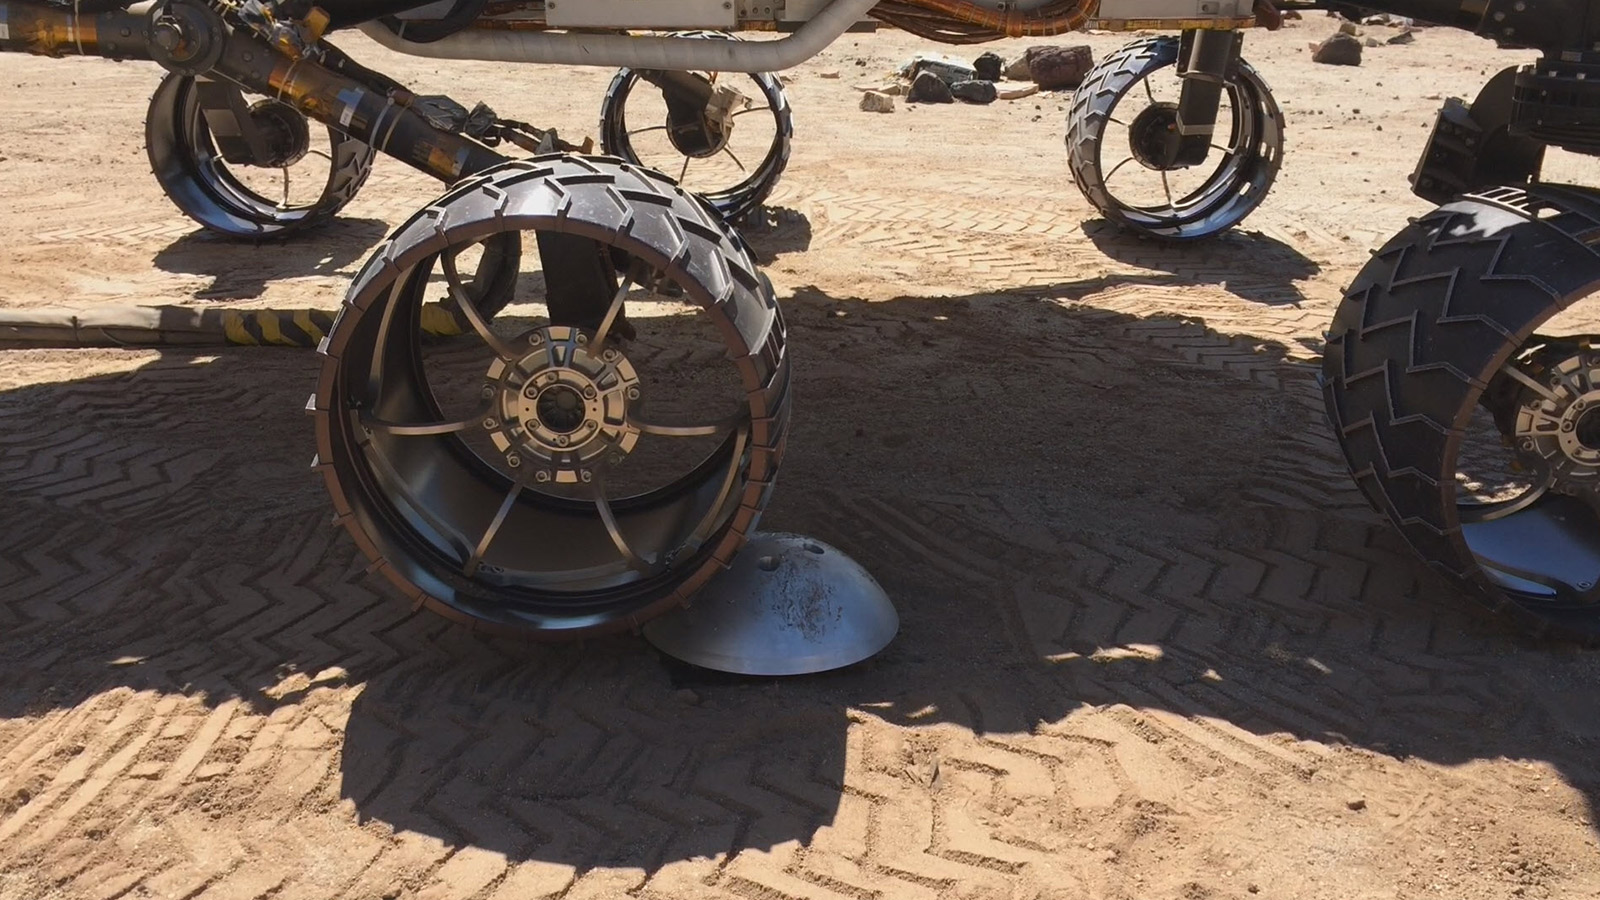 close up of robot wheels attempting to gain traction to roll over a smooth obstacle